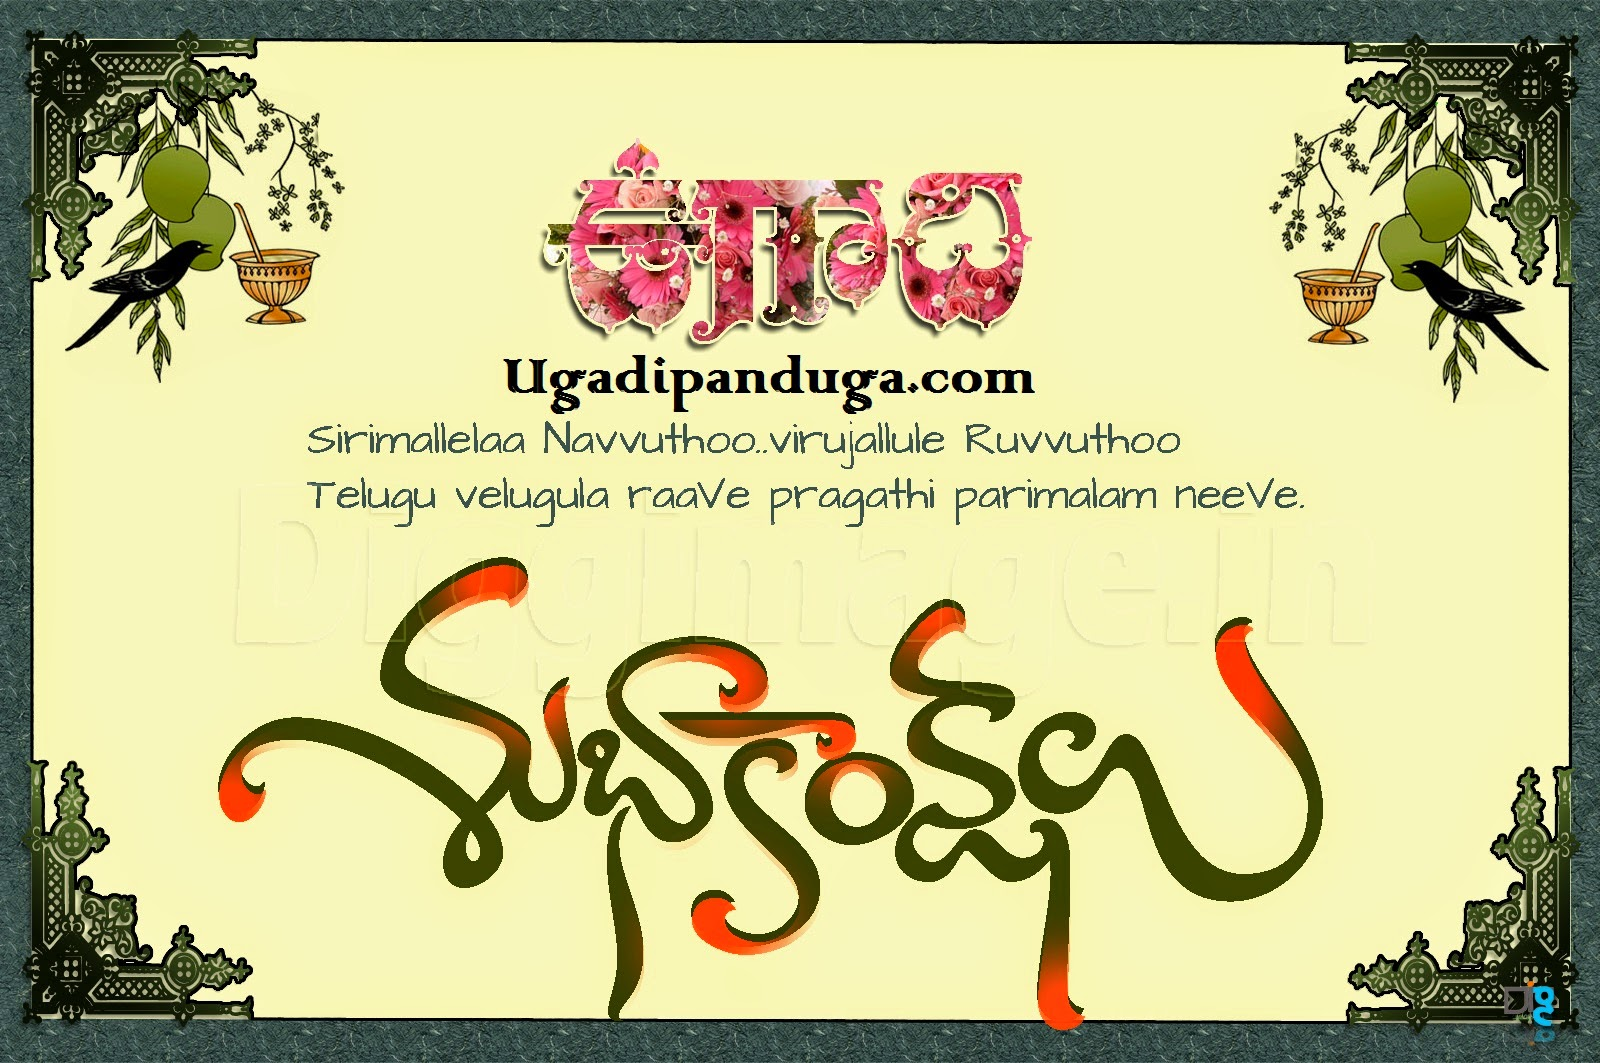 Ugadi greetings happy ugadi 2015 festival greetings wishes images sms kristyandbryce Images